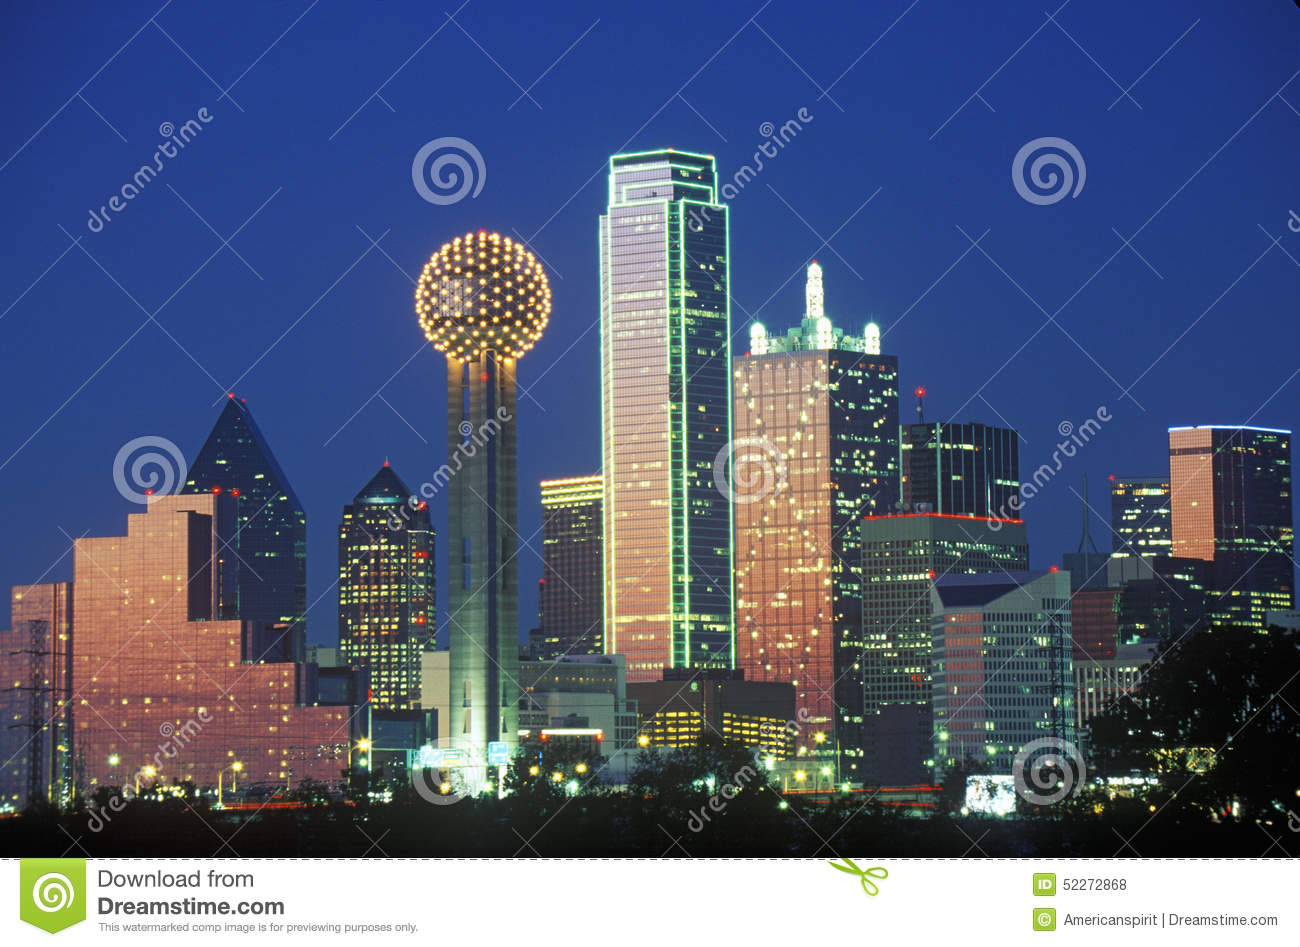 Download Dallas, TX Skyline At Night With Reunion Tower Stock Photo - Image of dallas, cityscapes: 52272868